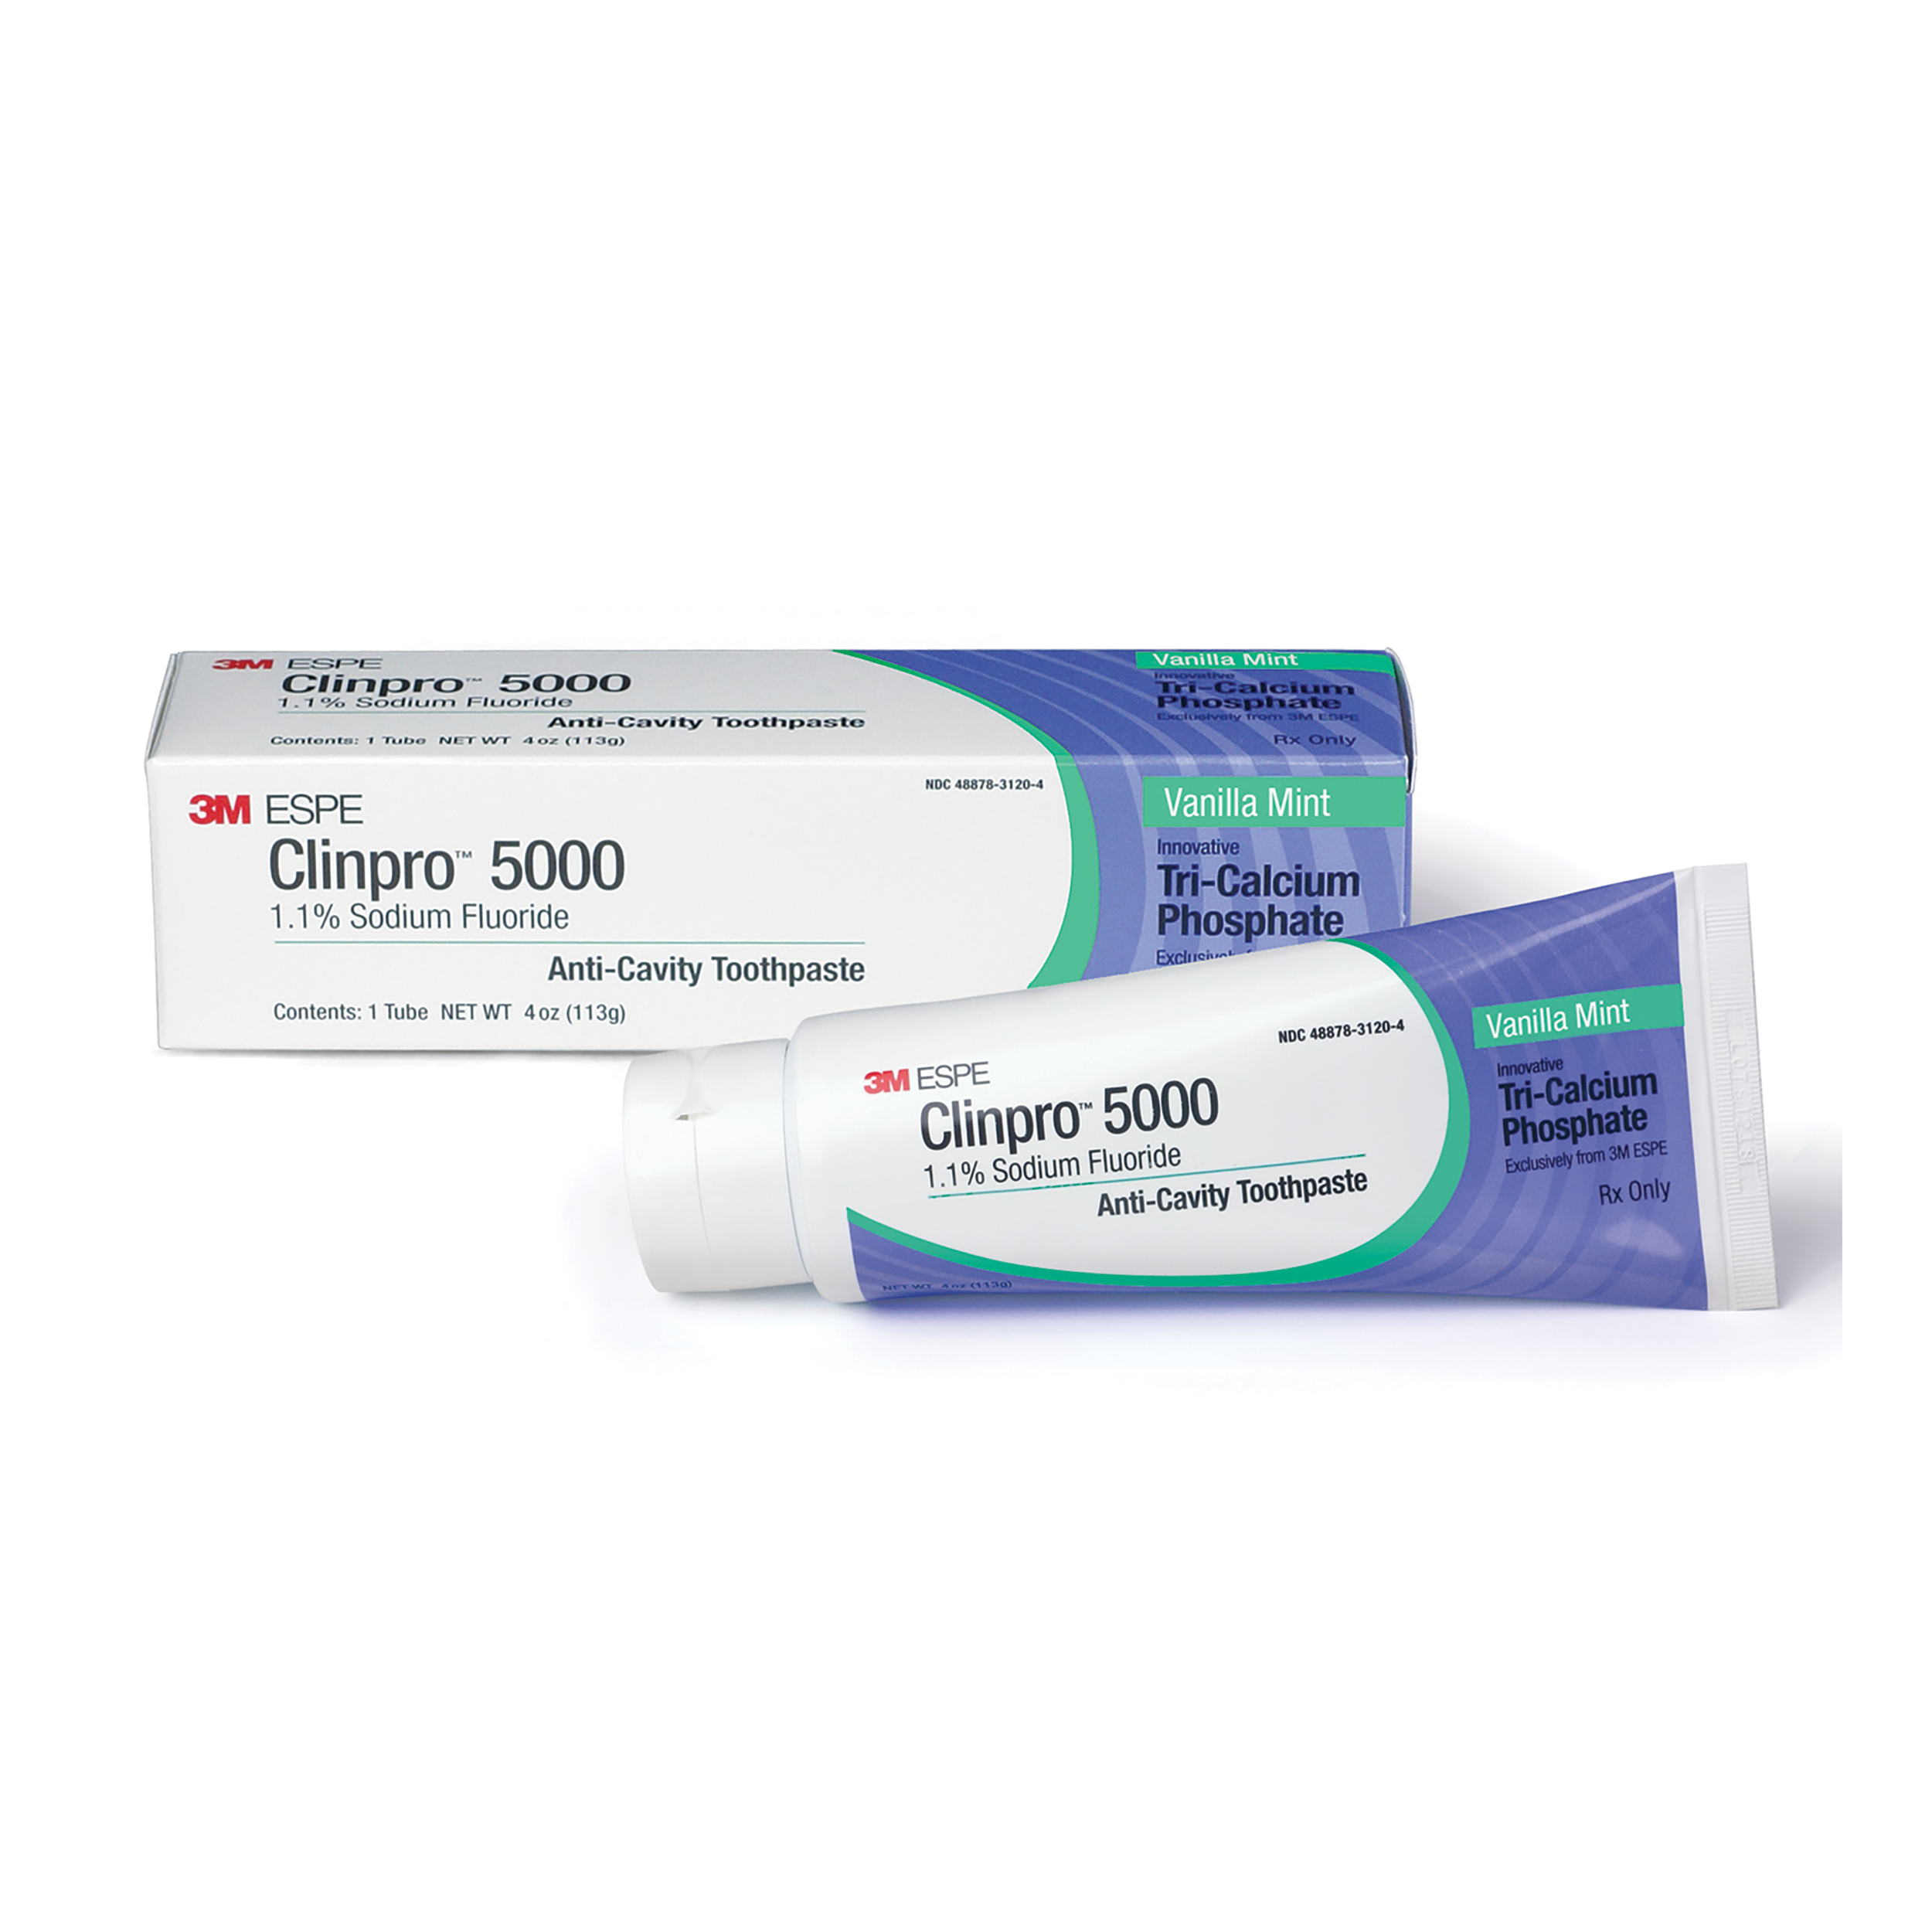 8671508 Clinpro 5000 Toothpaste Vanilla Mint, 4 oz., 12115